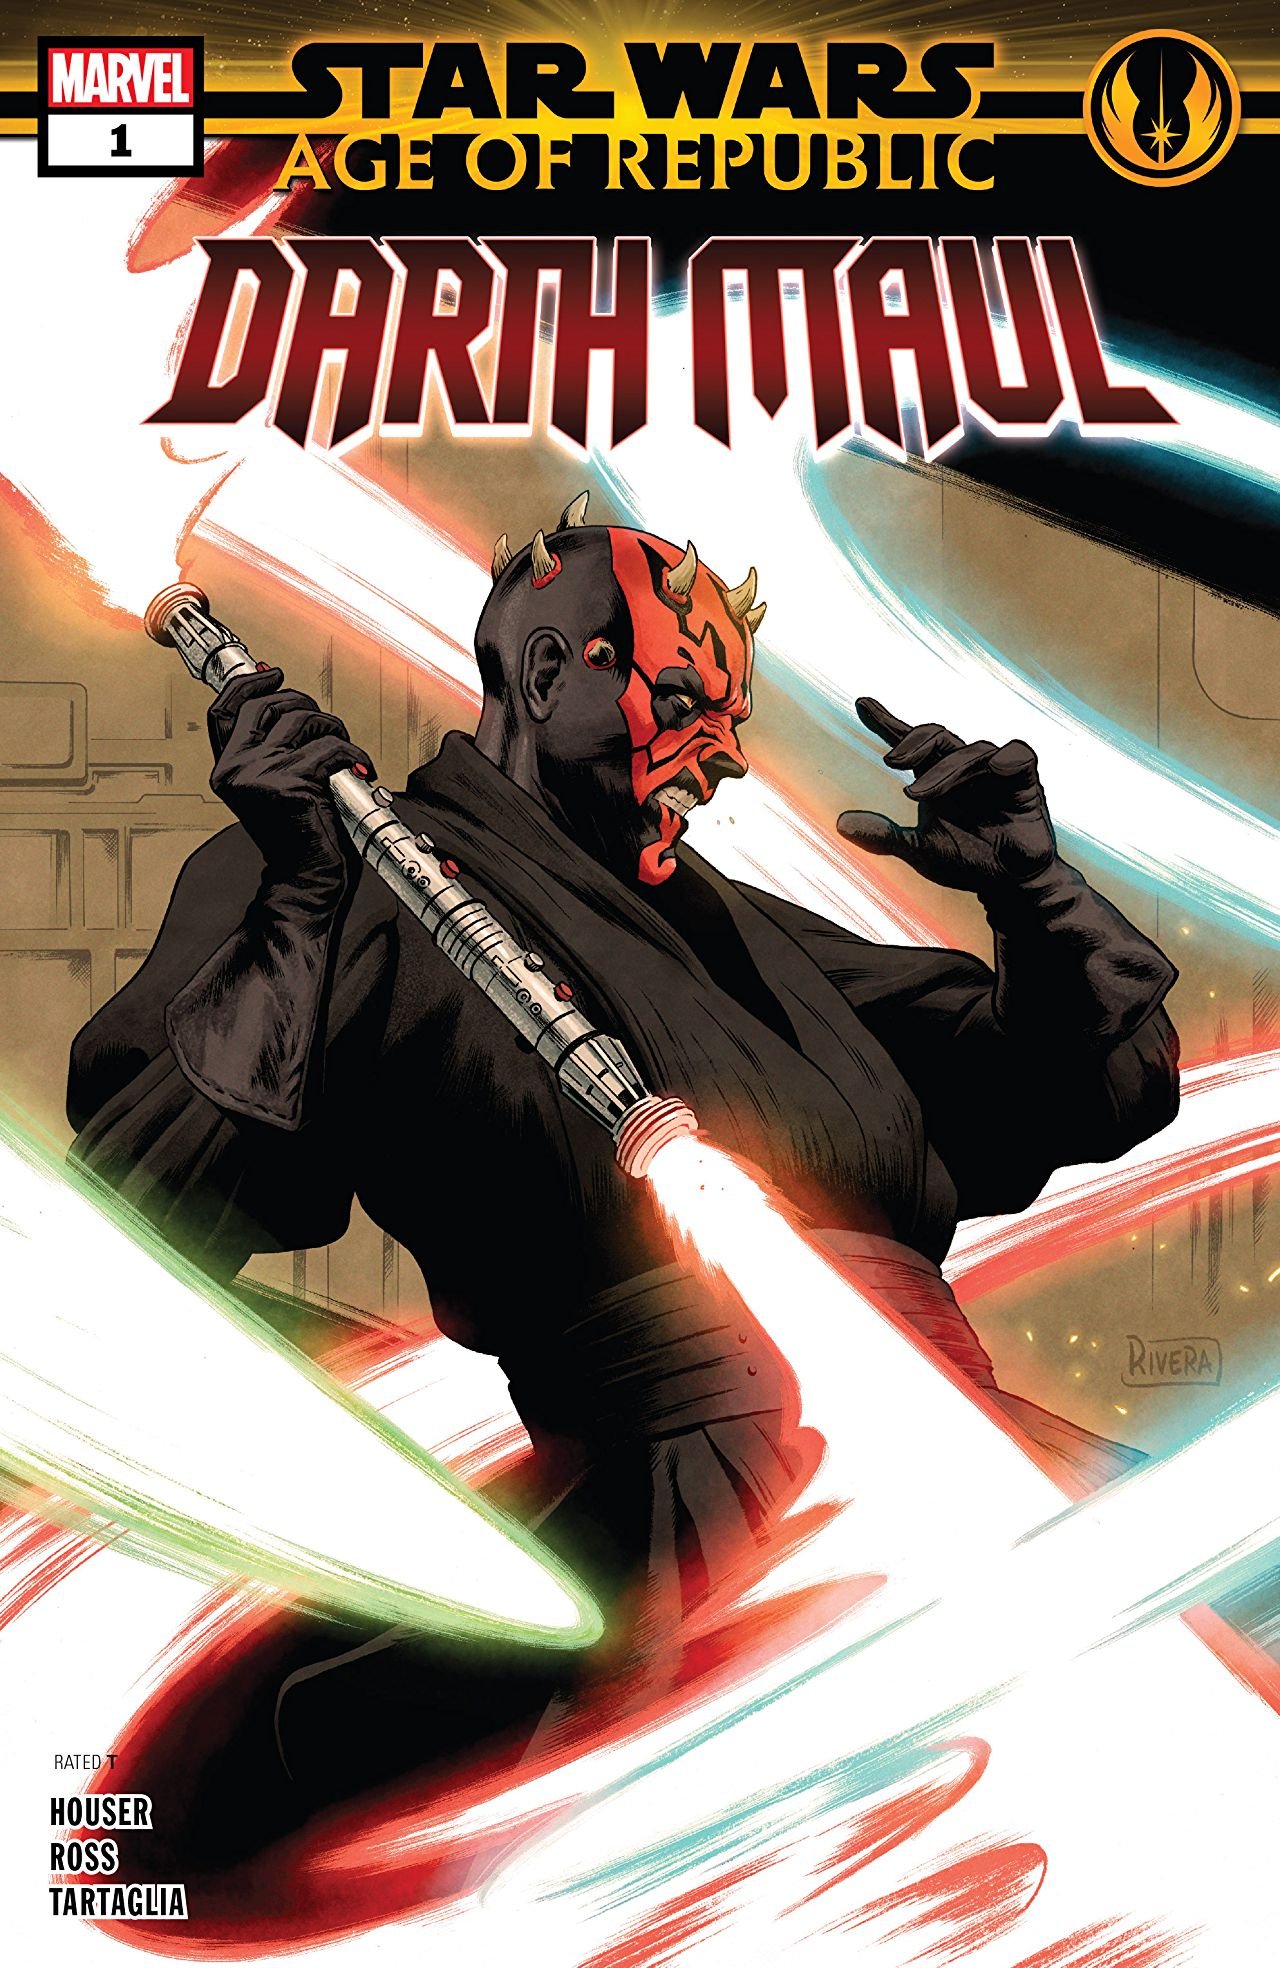 Star Wars: Age of Republic: Darth Maul review: Enjoyable but forgettable